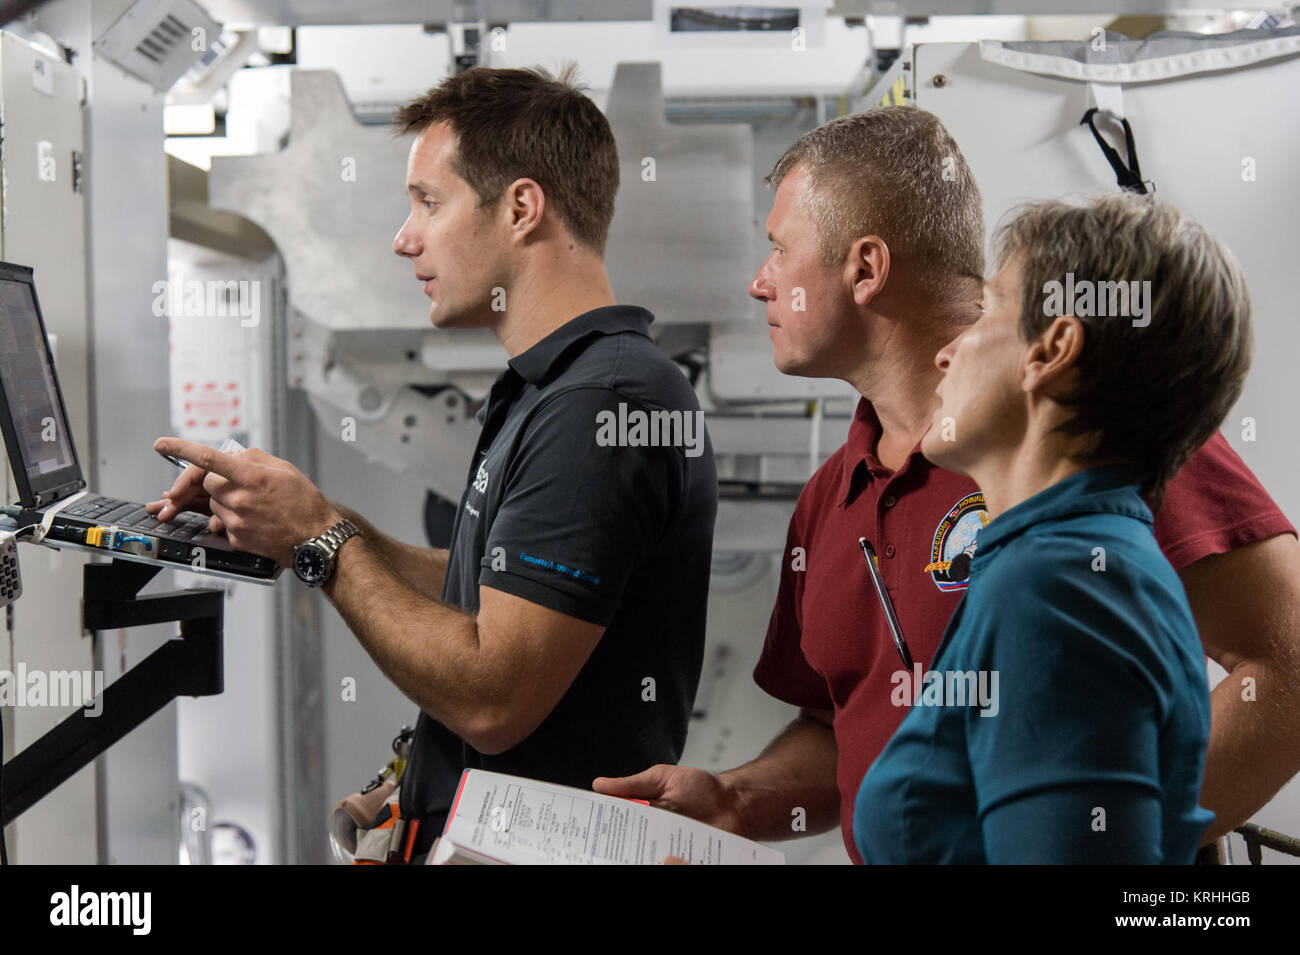 PHOTO DATE: 15 September 2015 LOCATION: Bldg. 9NW - SVMTF - ISS Mockup Trainers SUBJECT: Expedition 50/51 crew members - Stock Image